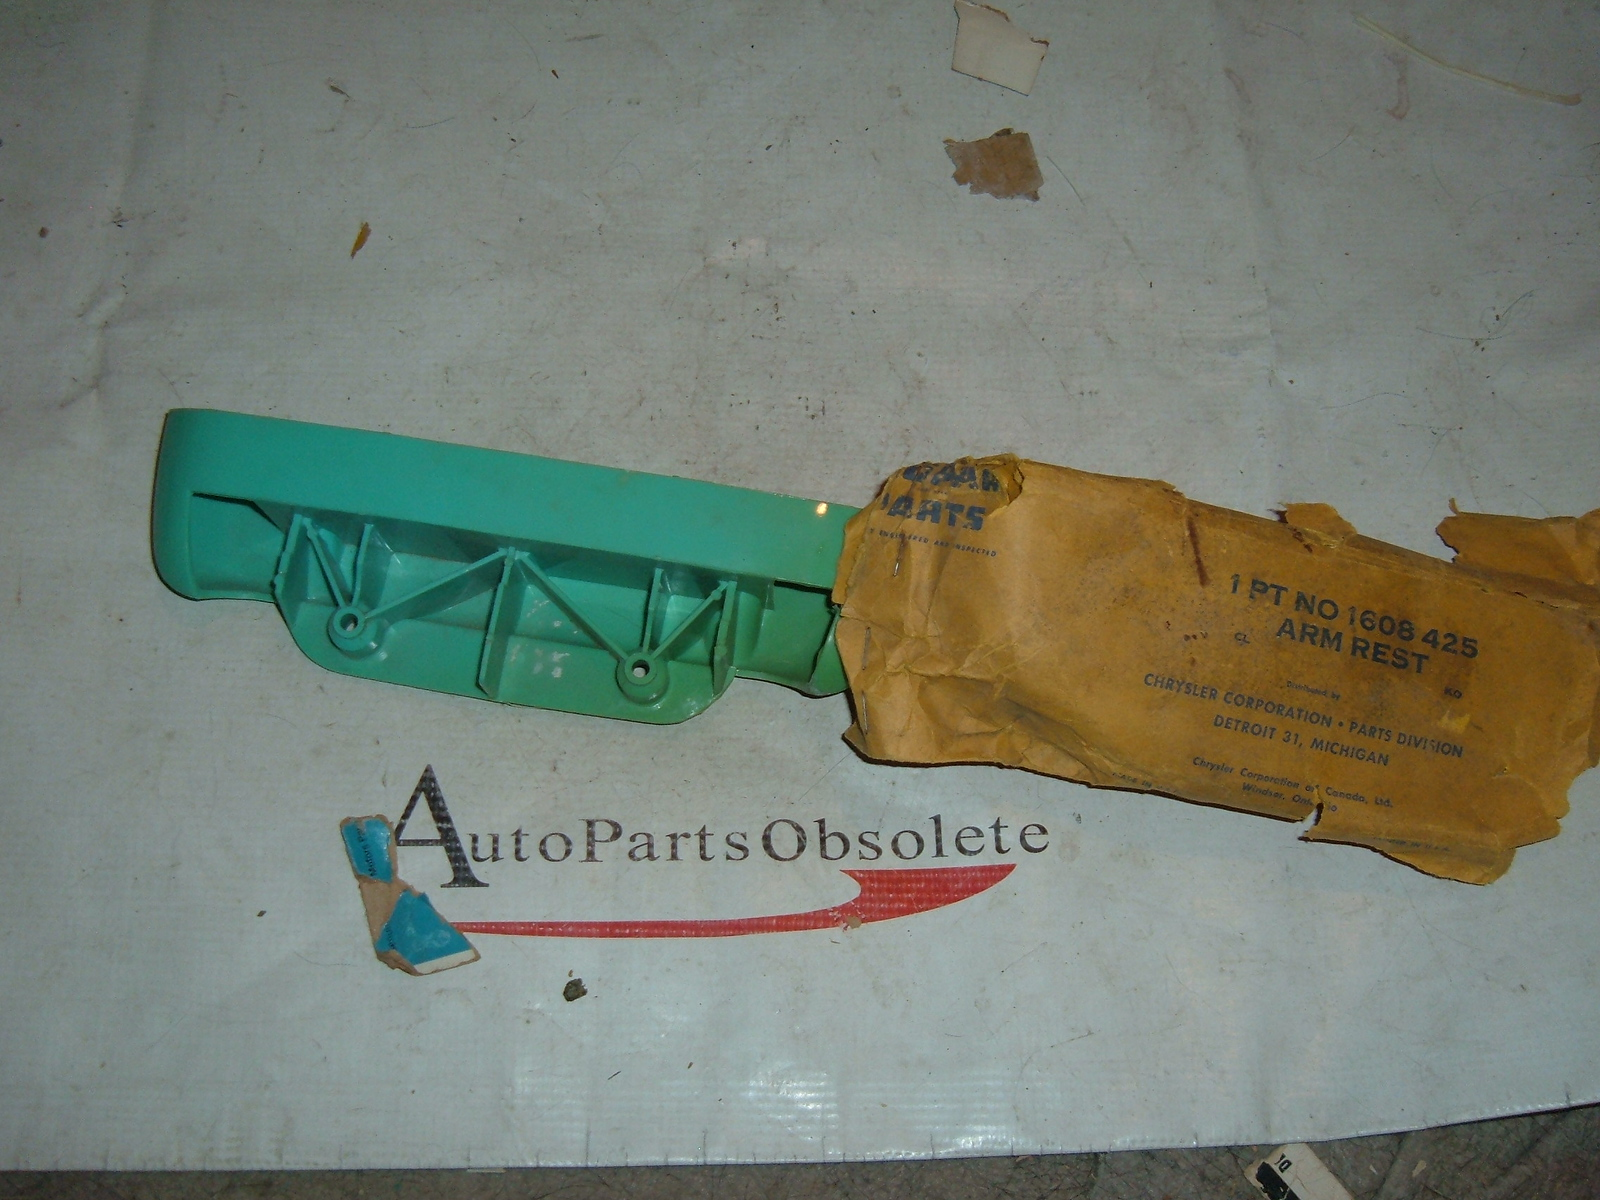 1955 plymouth arm rest base nos mopar 1608425 (z 1608425)